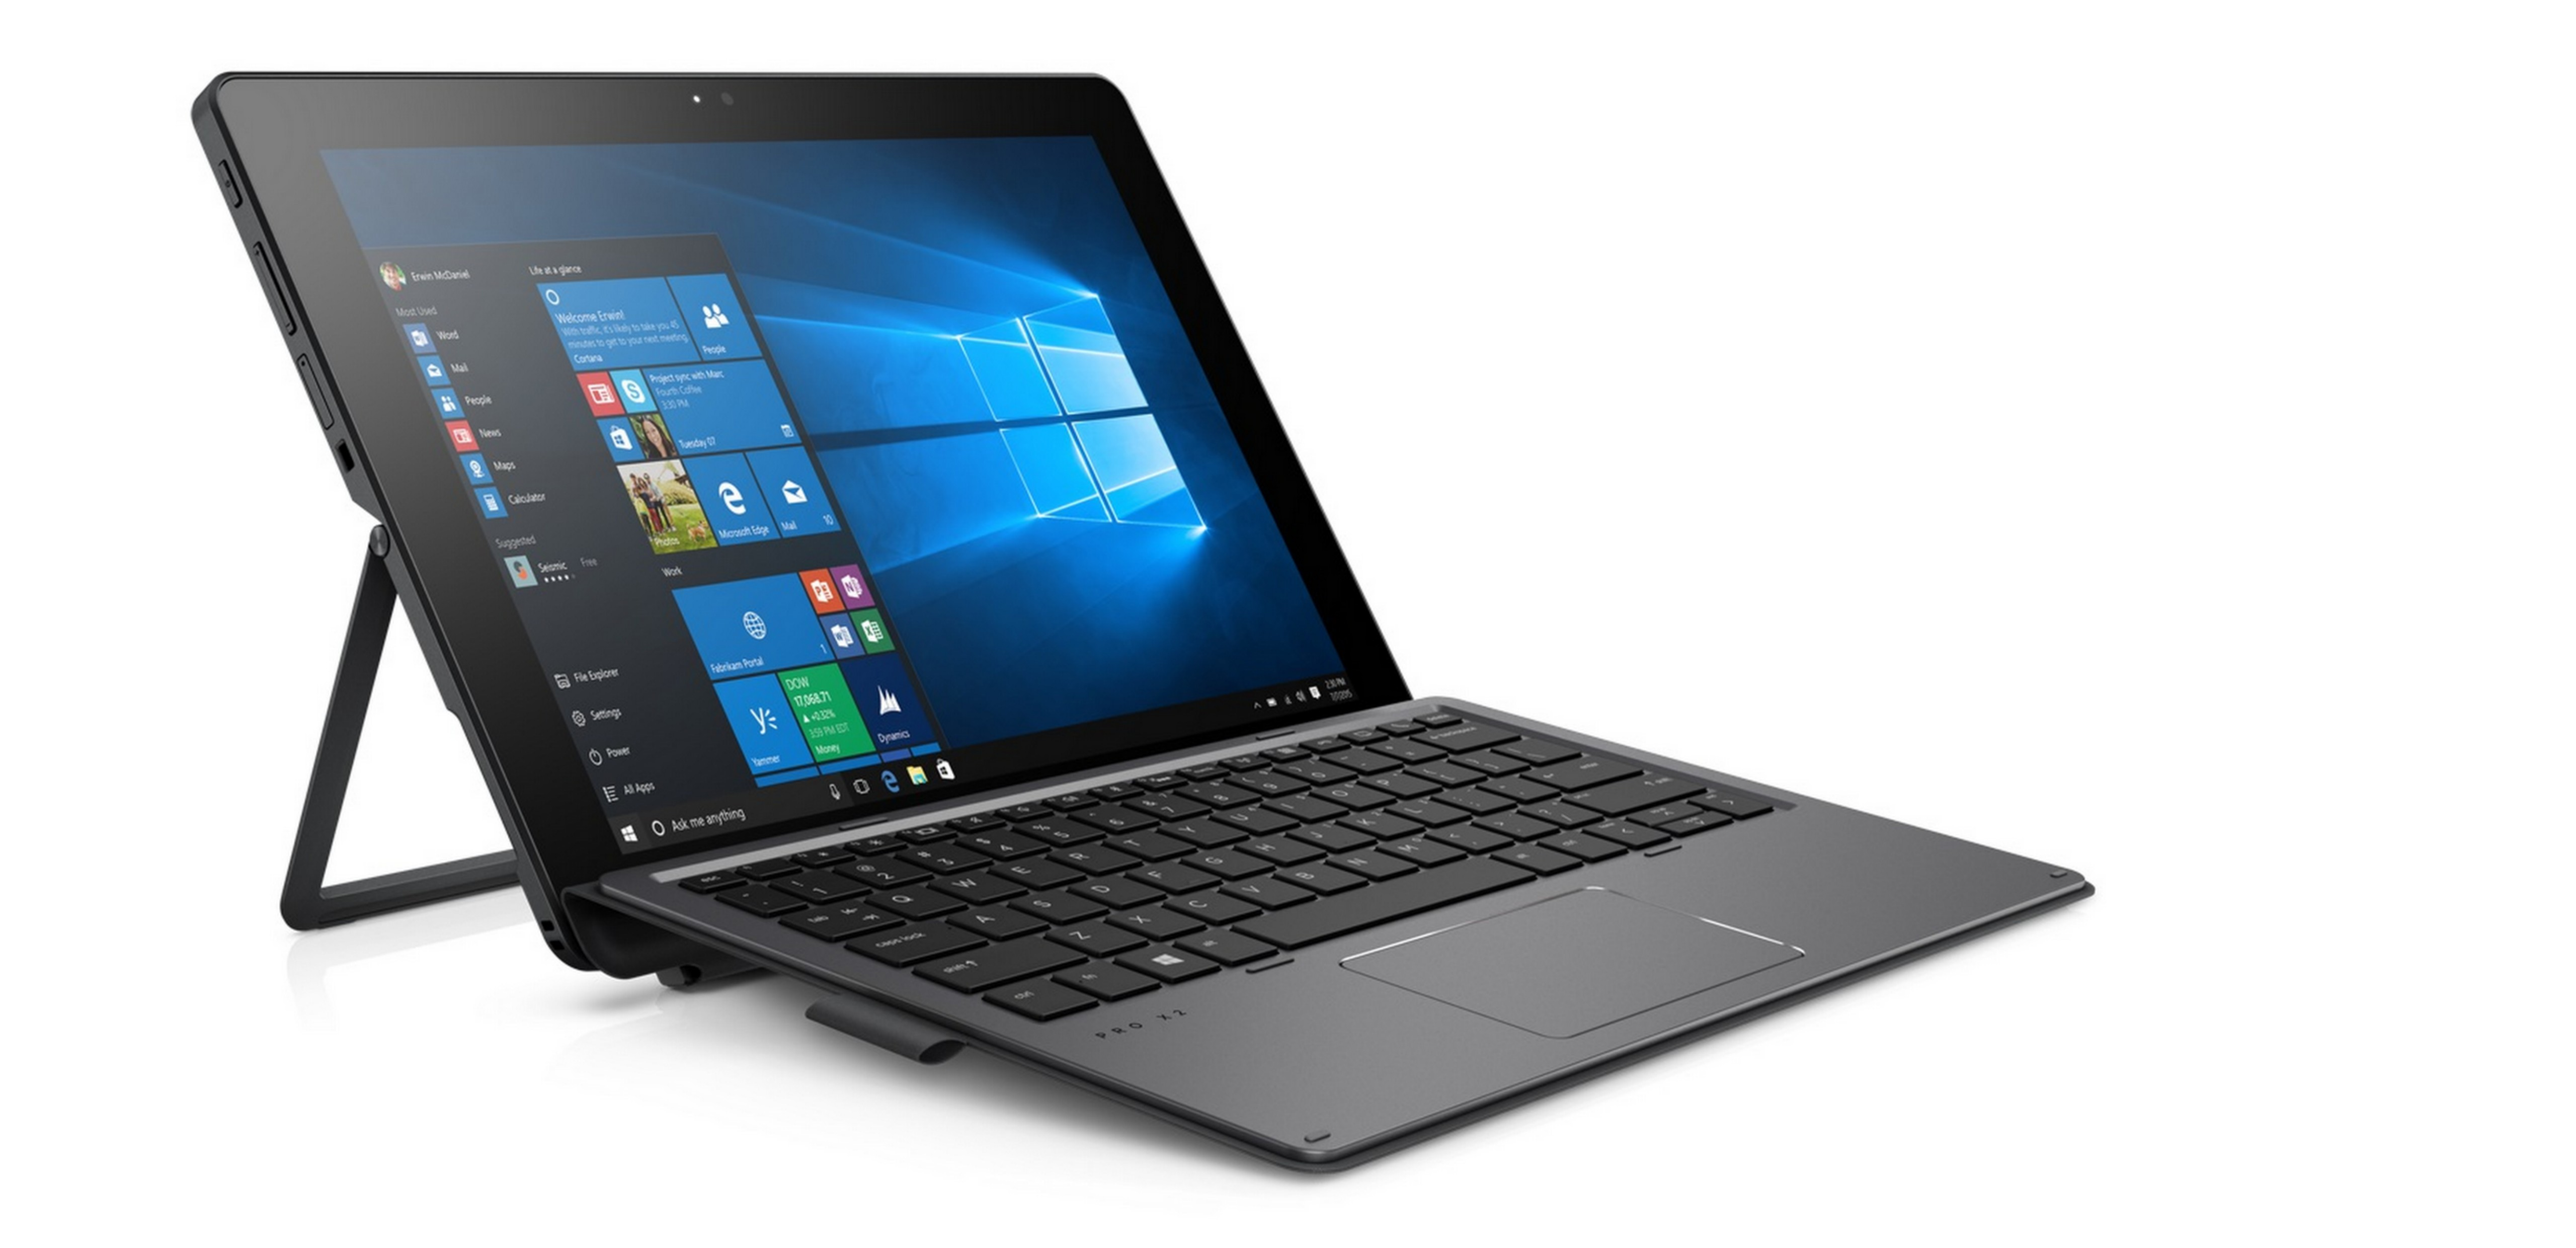 The HP Pro x2 512 G2 with Windows 10